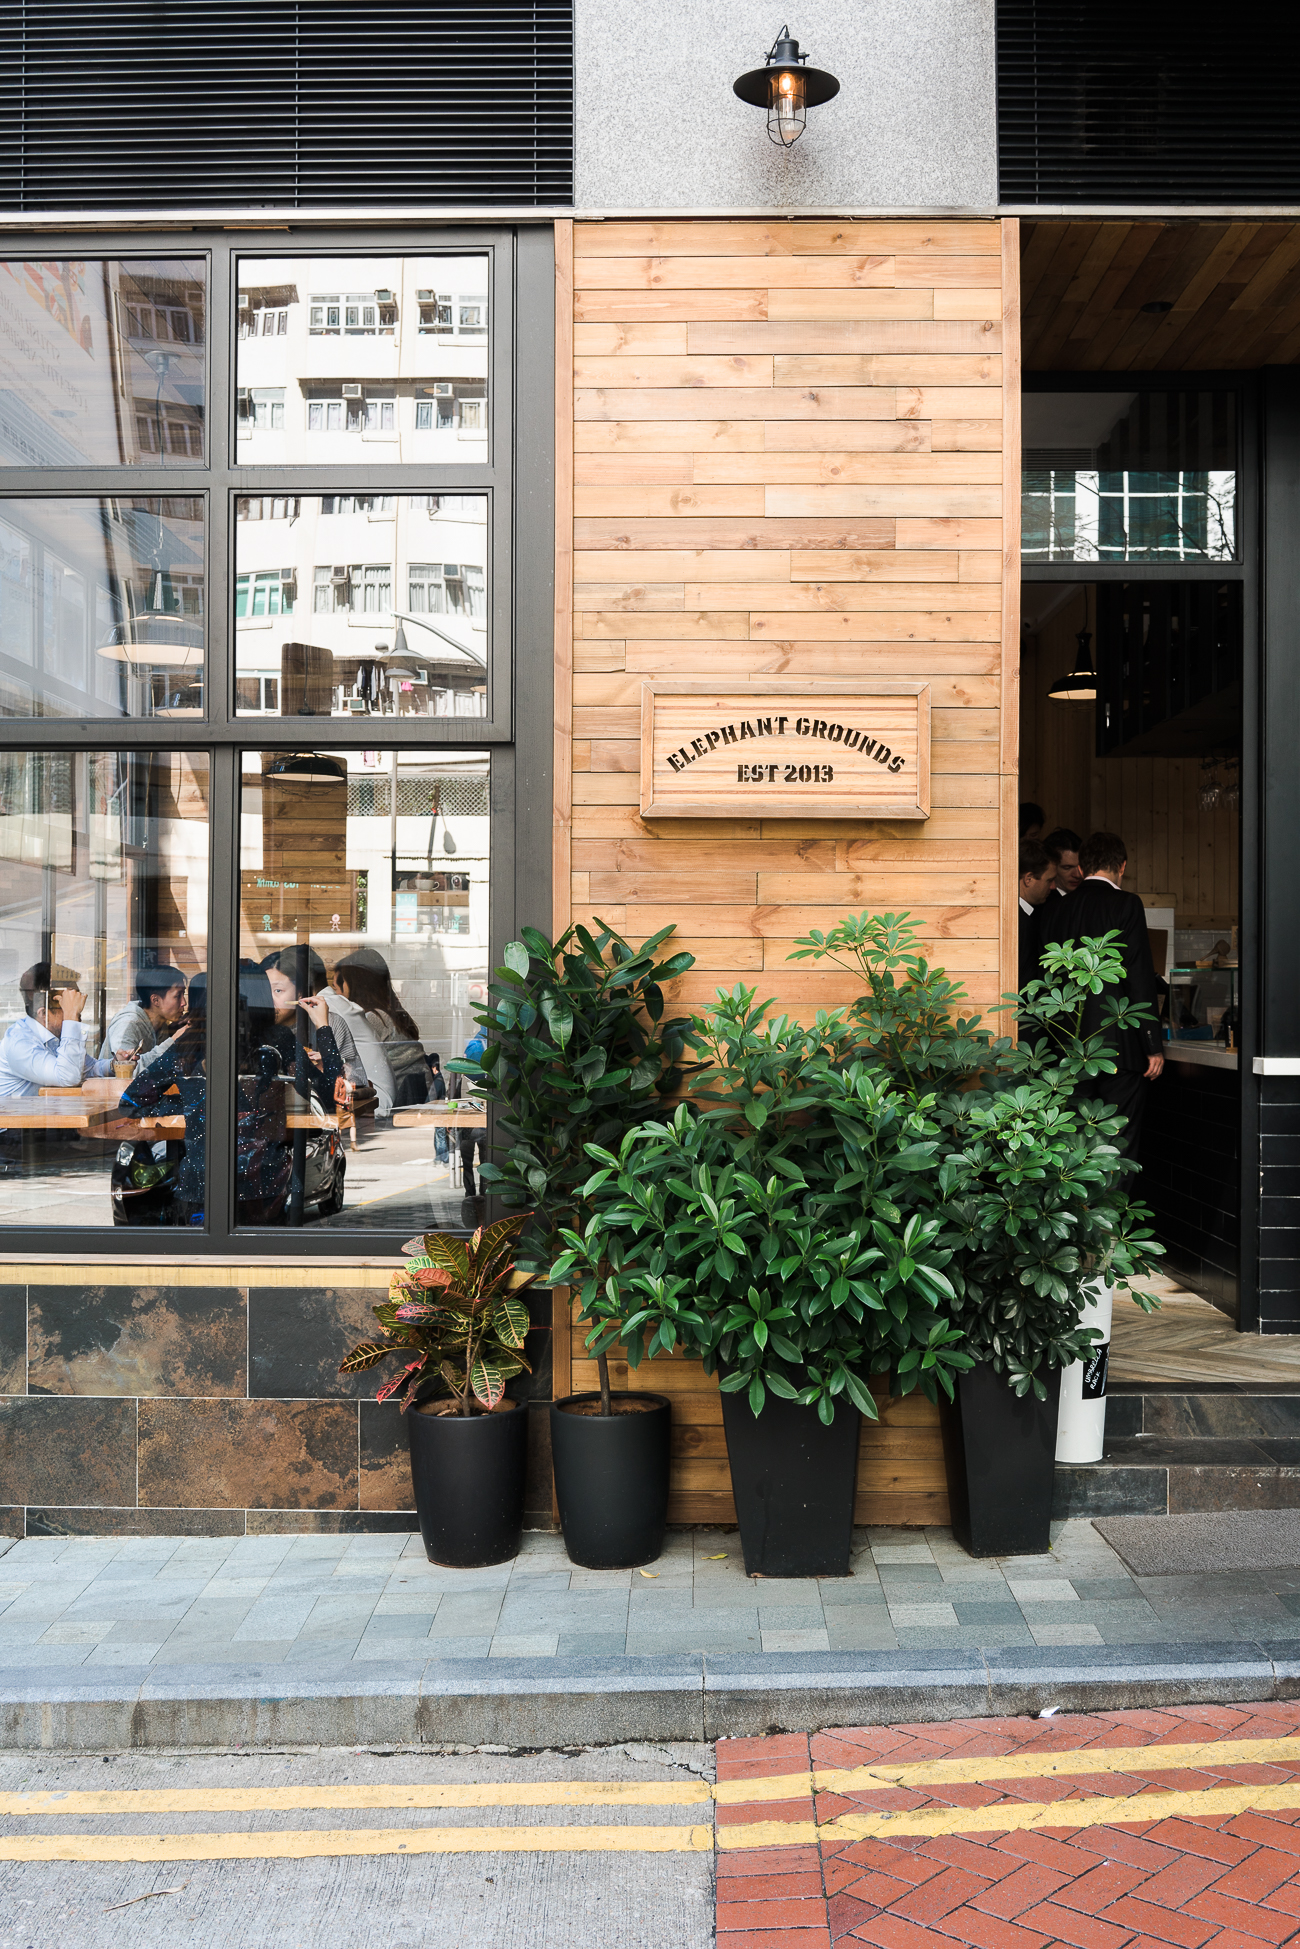 Hong Kong City Guide - Elephant Grounds / See and Savour